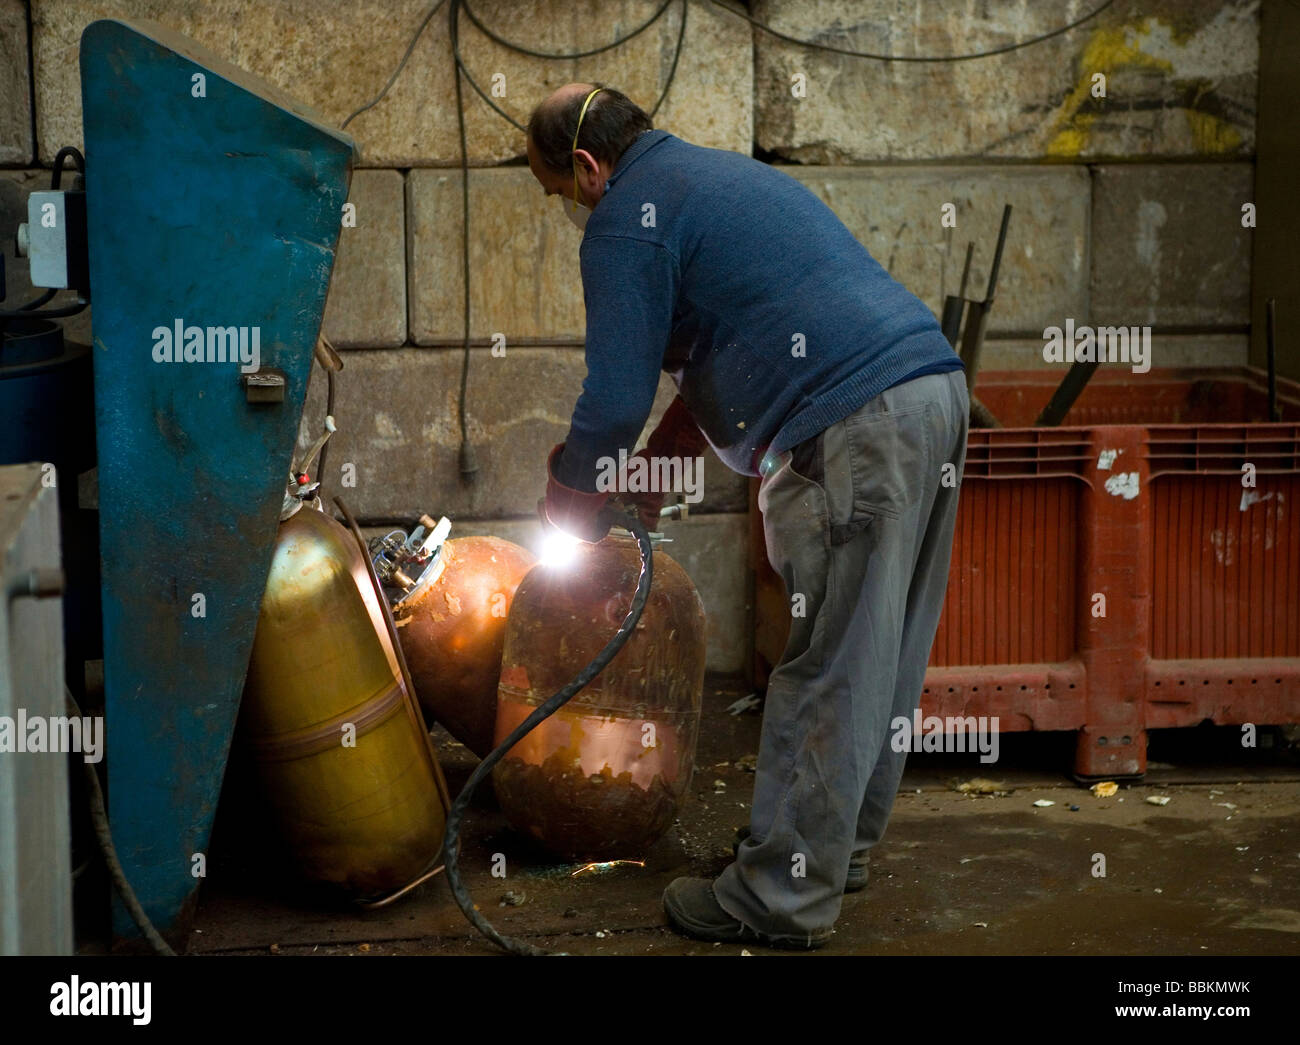 Burning Boiler Stockfotos & Burning Boiler Bilder - Alamy